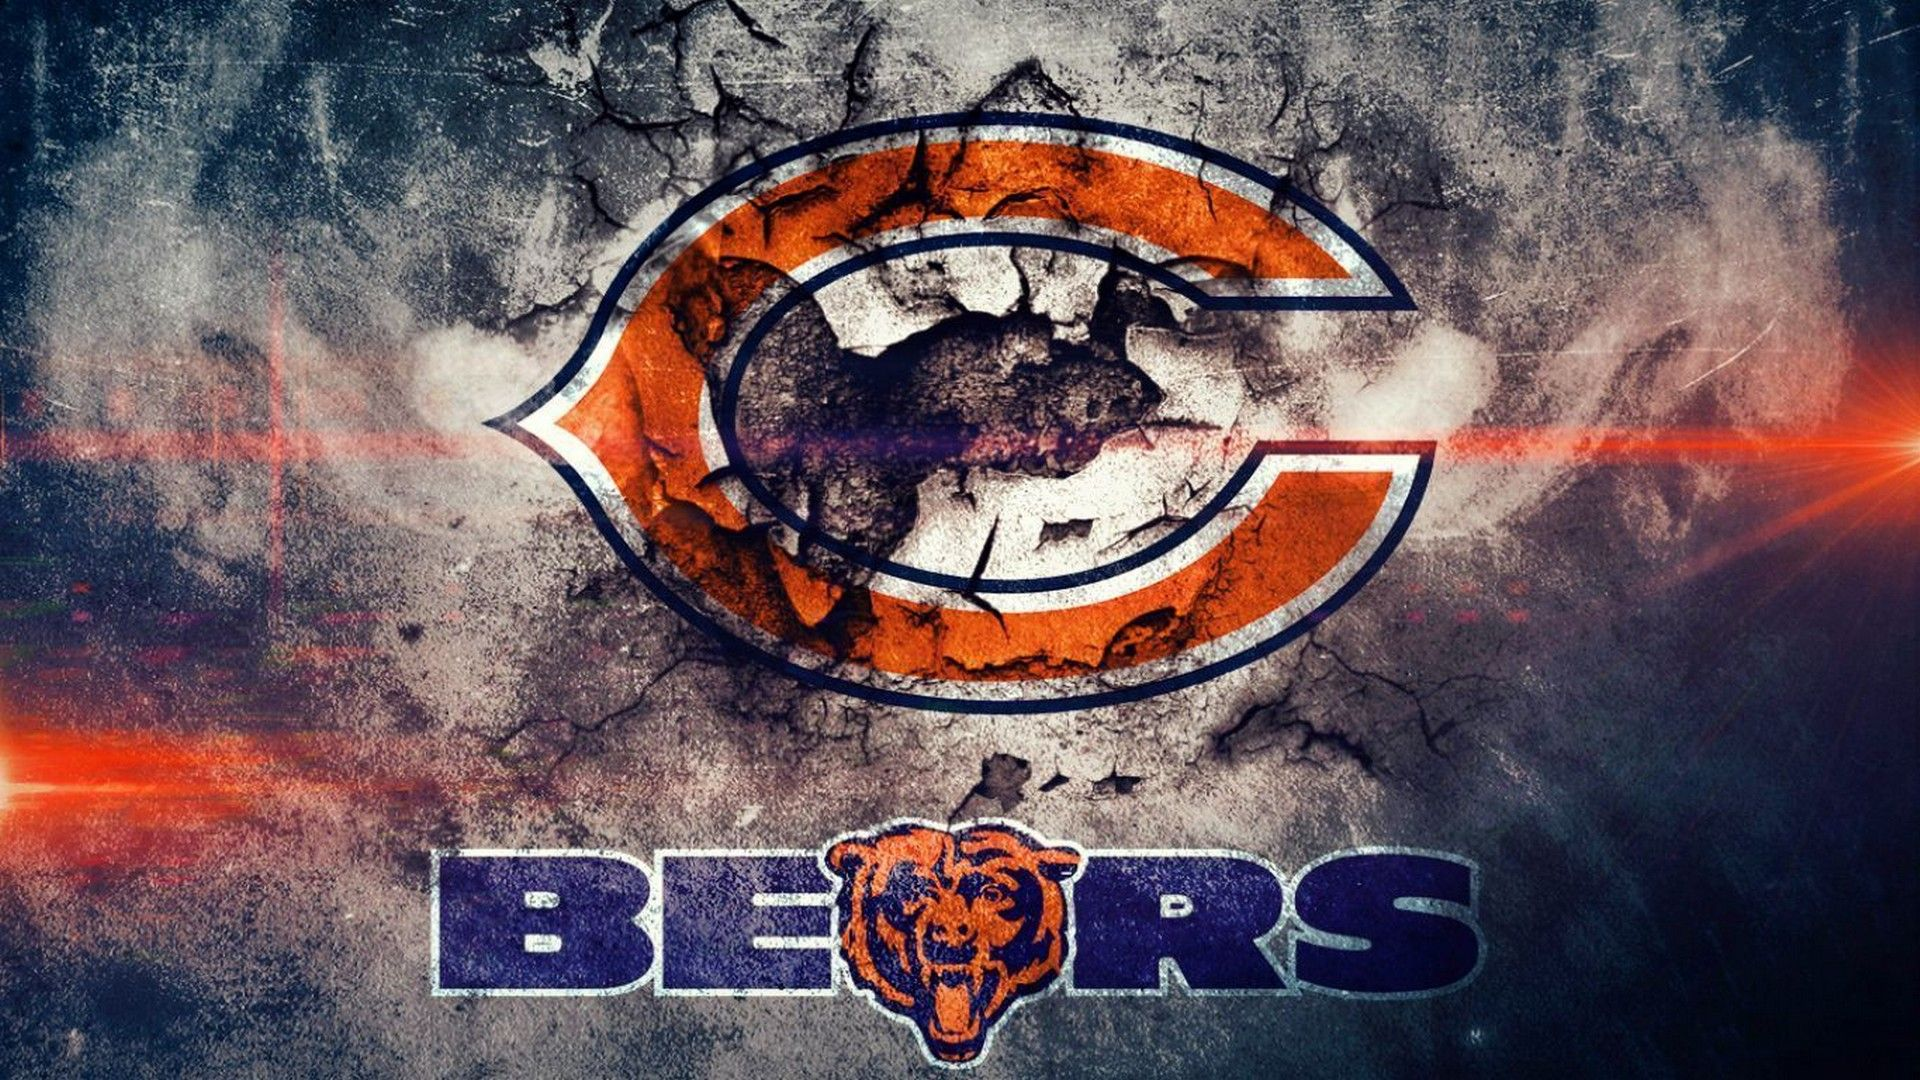 Chicago Bears Nfl Wallpaper 2021 Nfl Football Wallpapers Chicago Bears Logo Chicago Bears Wallpaper Chicago Bears Pictures